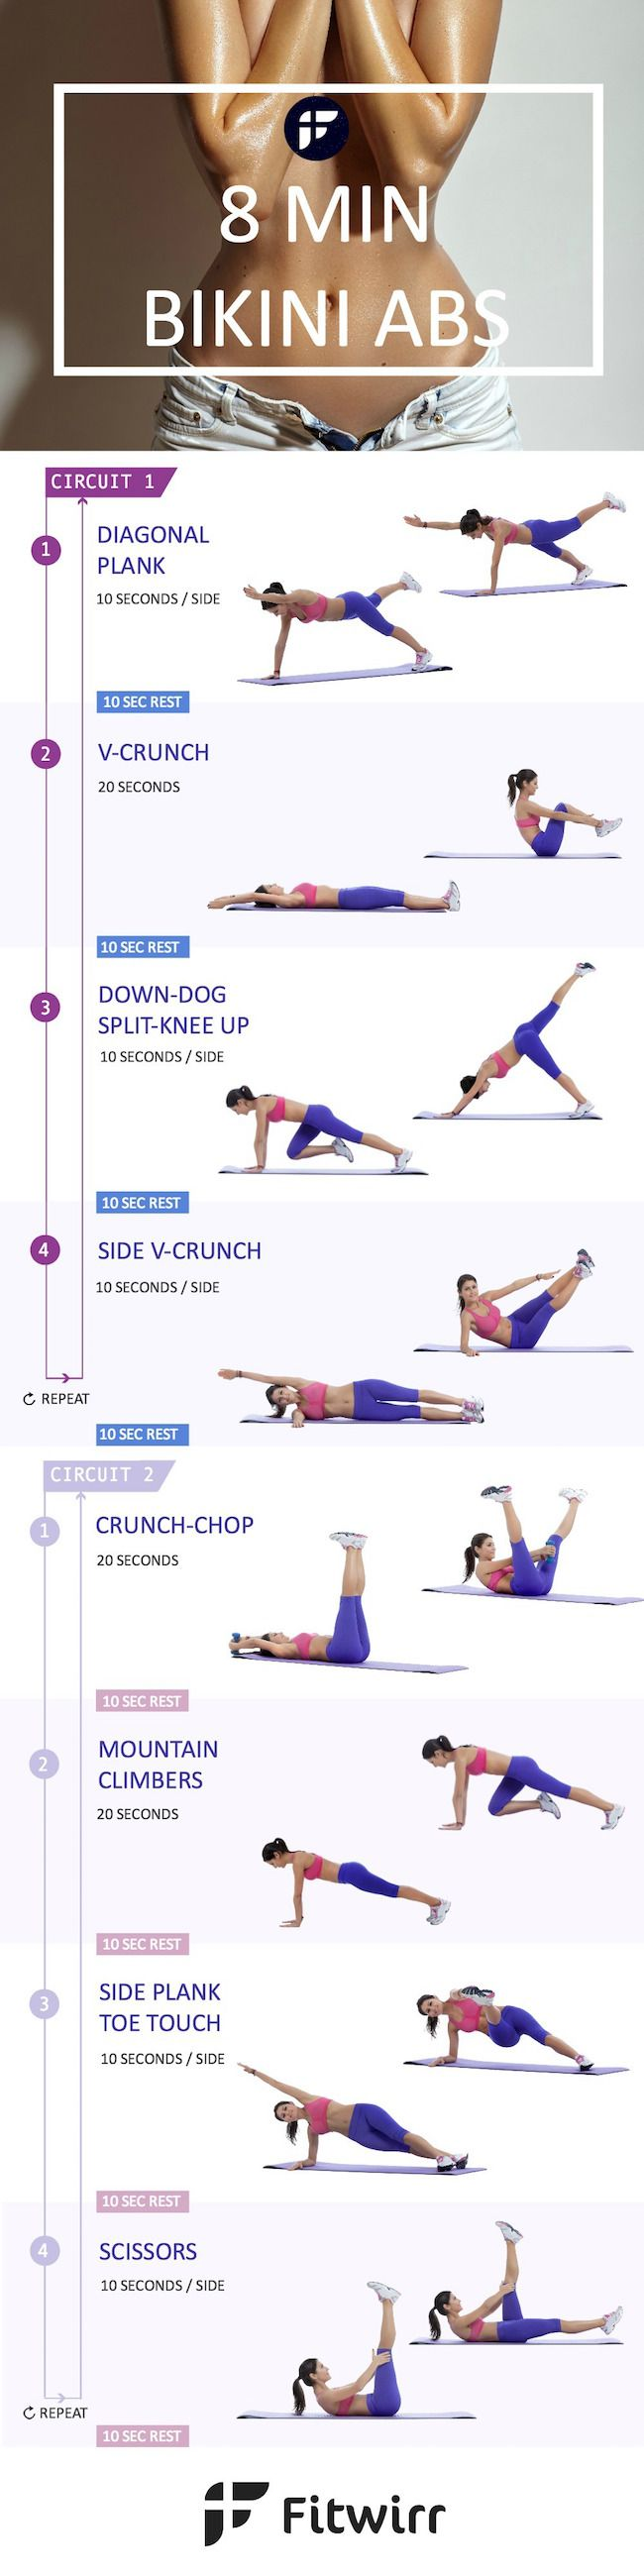 8 minute ab workout - we all have 8 minutes to work on our abs!